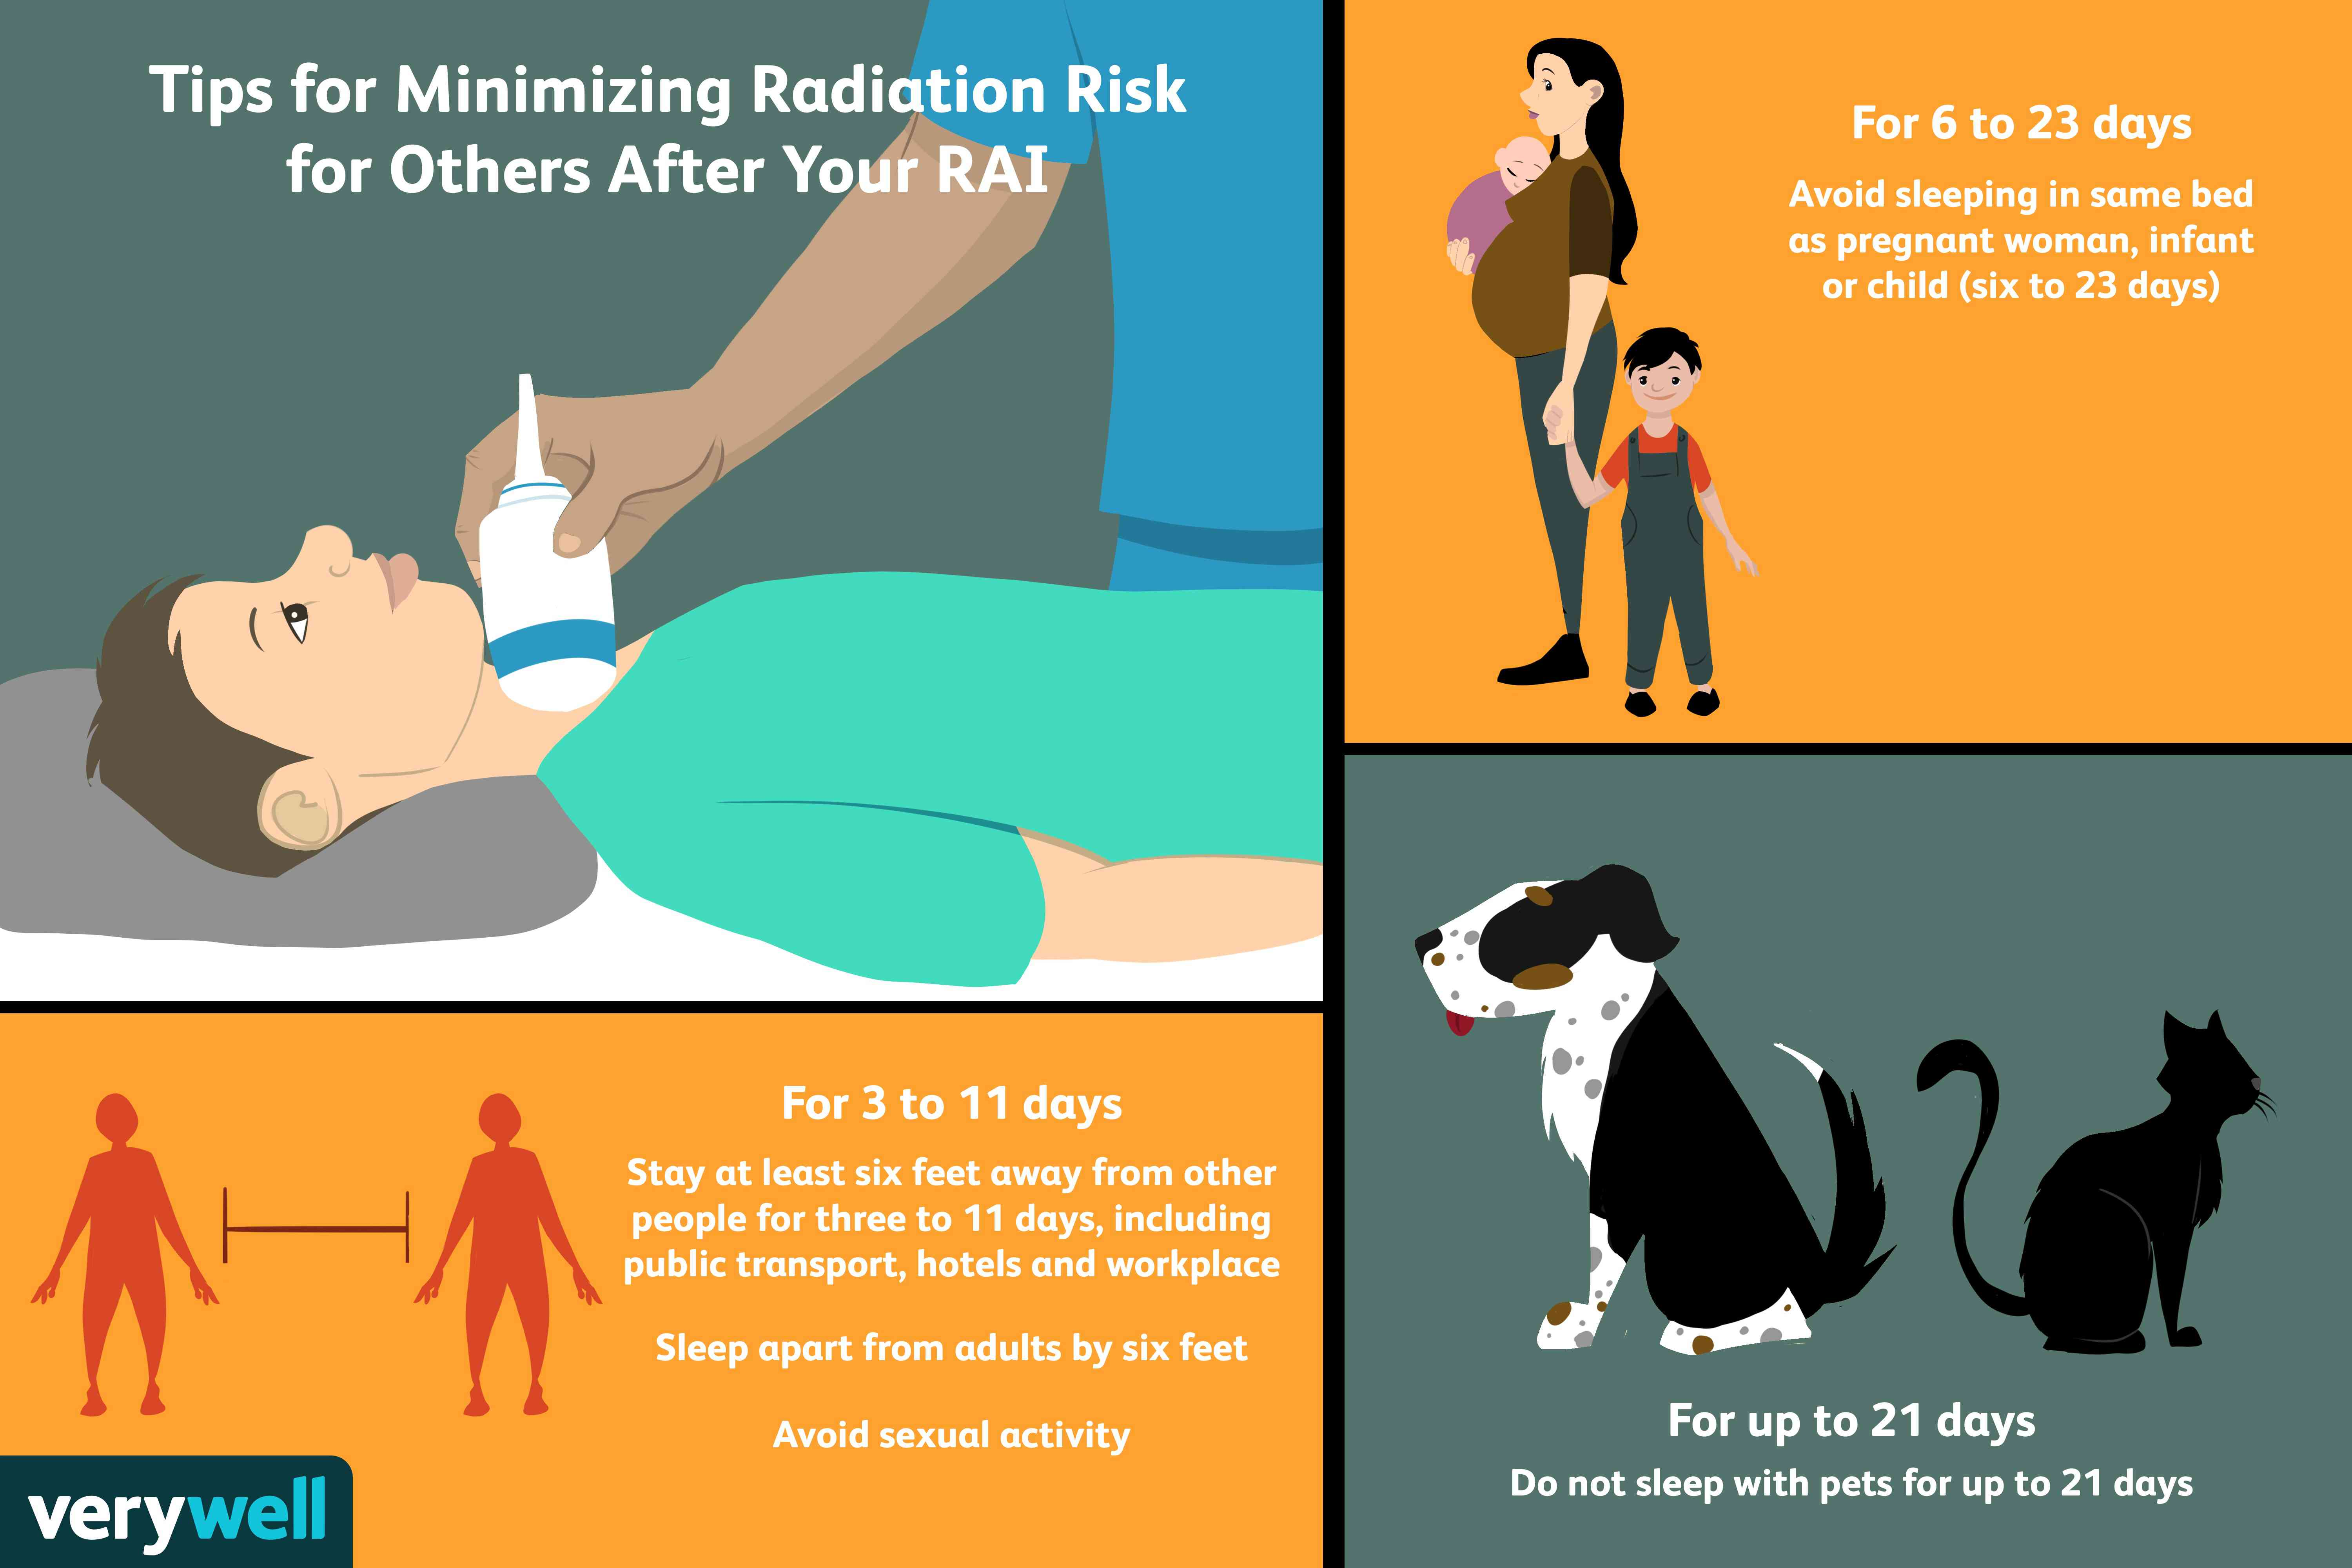 Tips for minimizing radiation risk for others after your RAI.